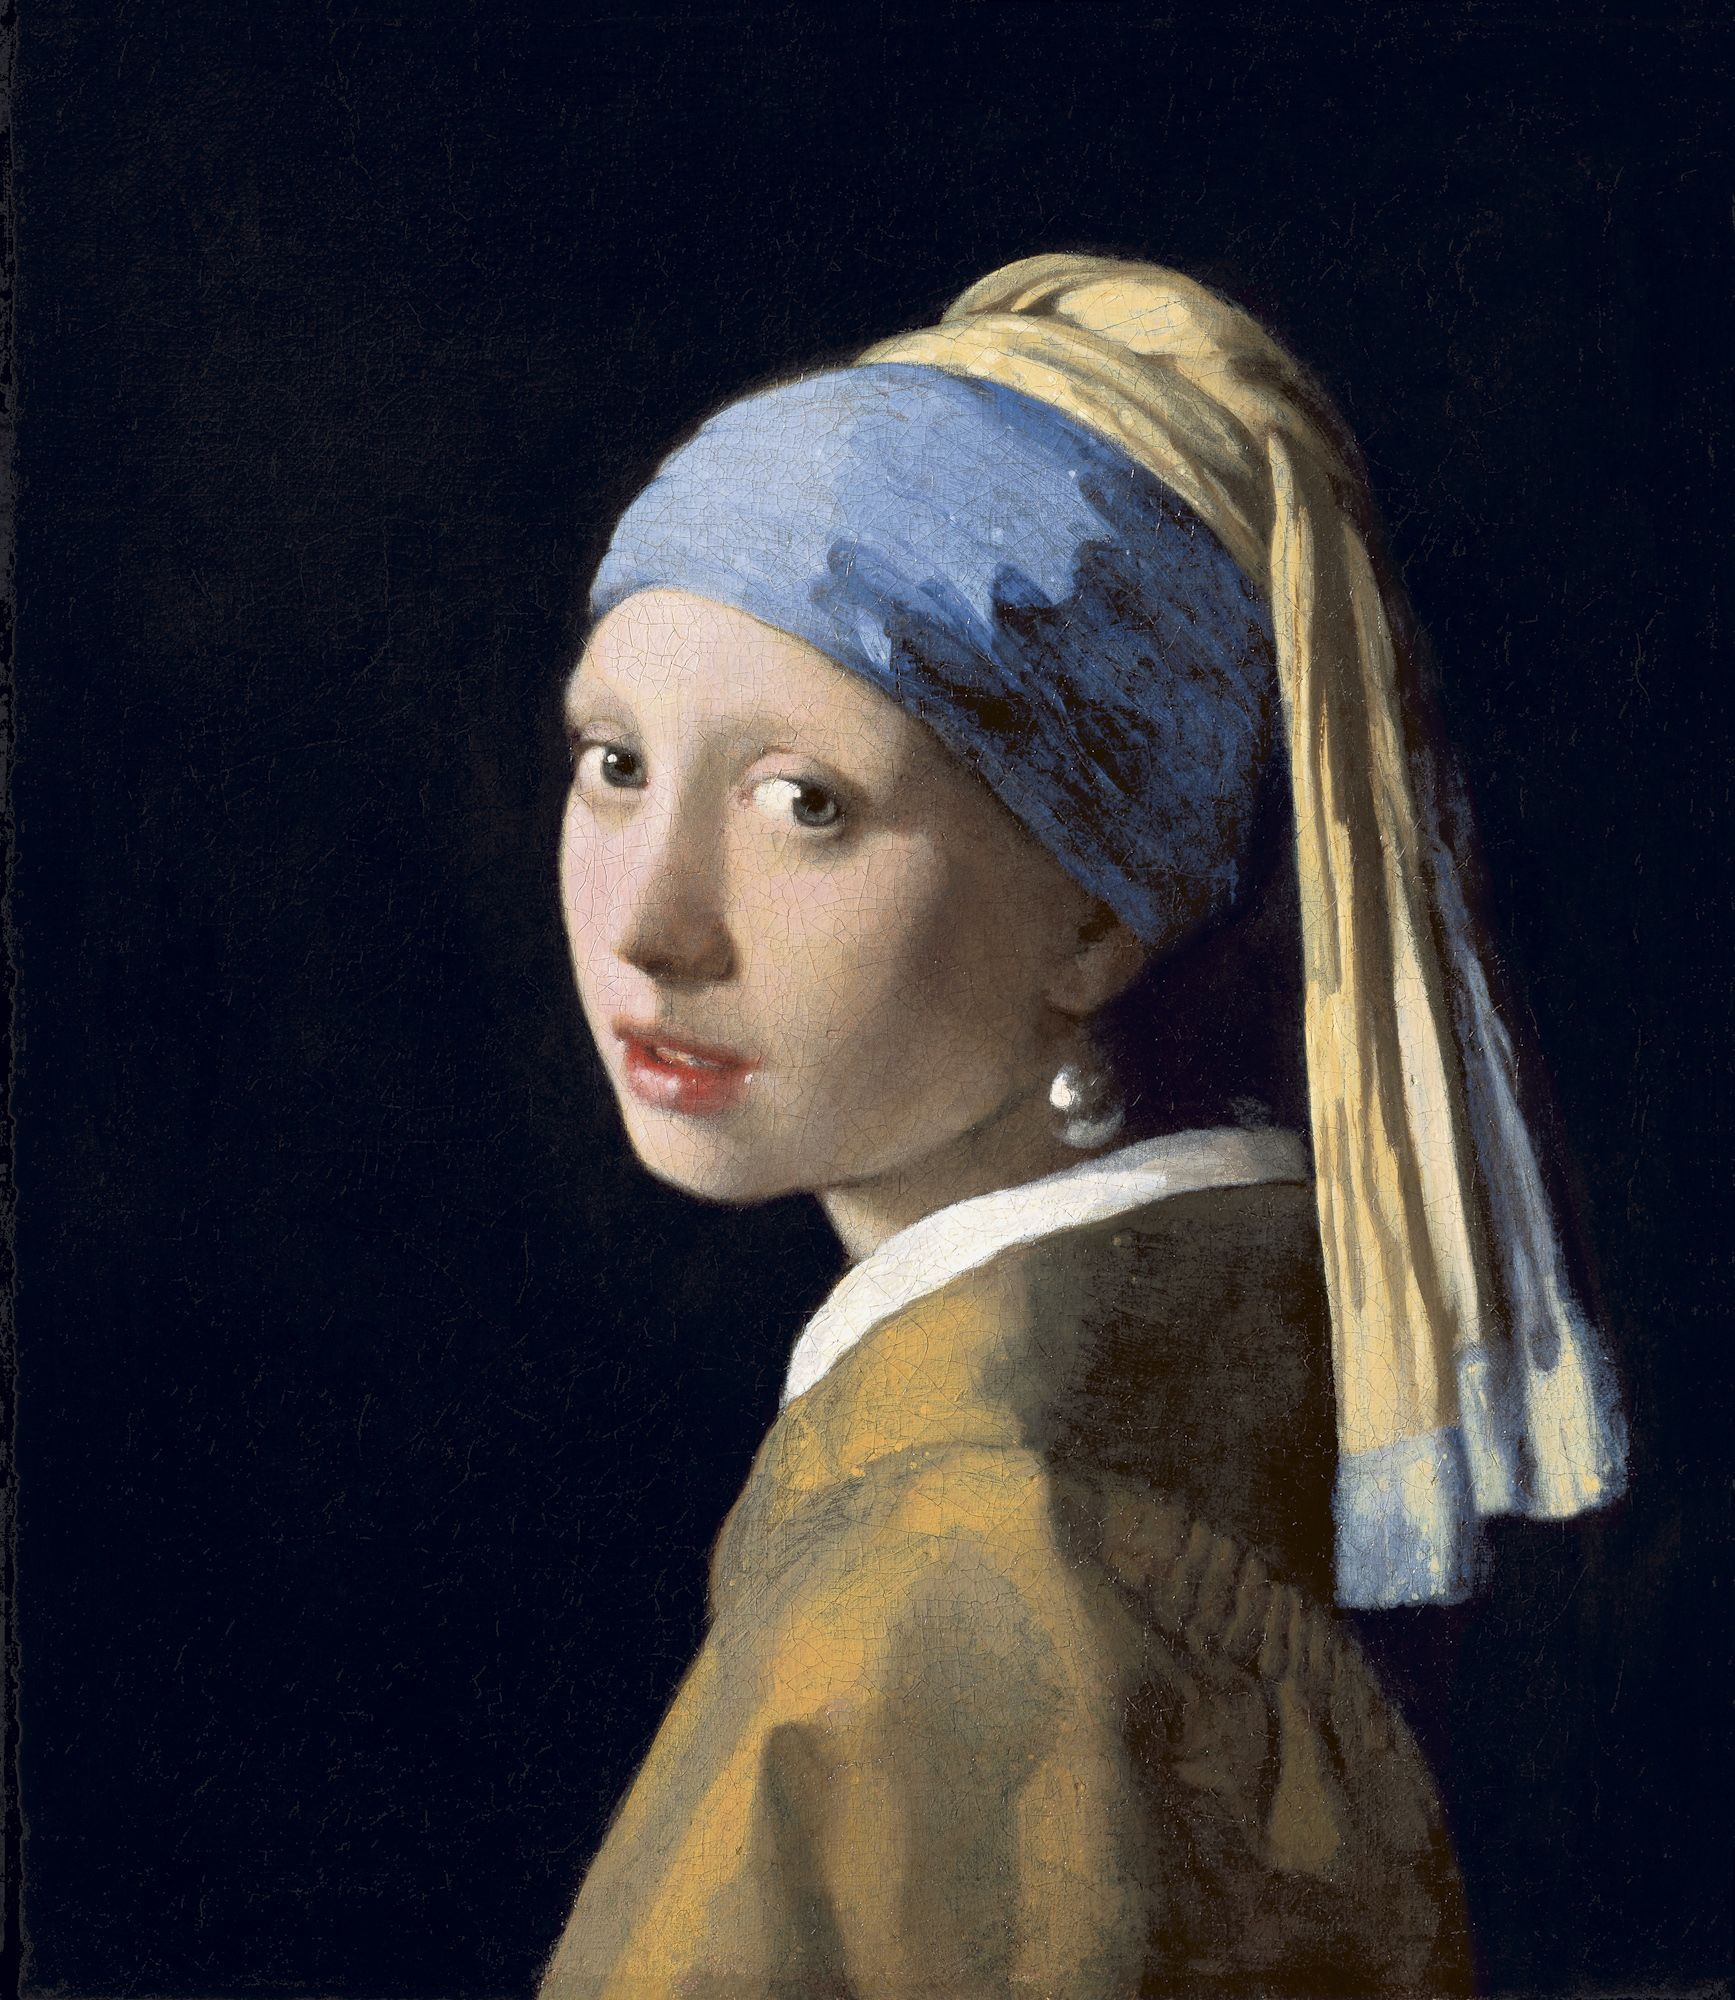 'Vermeer, Rembrandt and Hals: Masterpieces of Dutch Painting From the Mauritshuis' at the Frick Collection